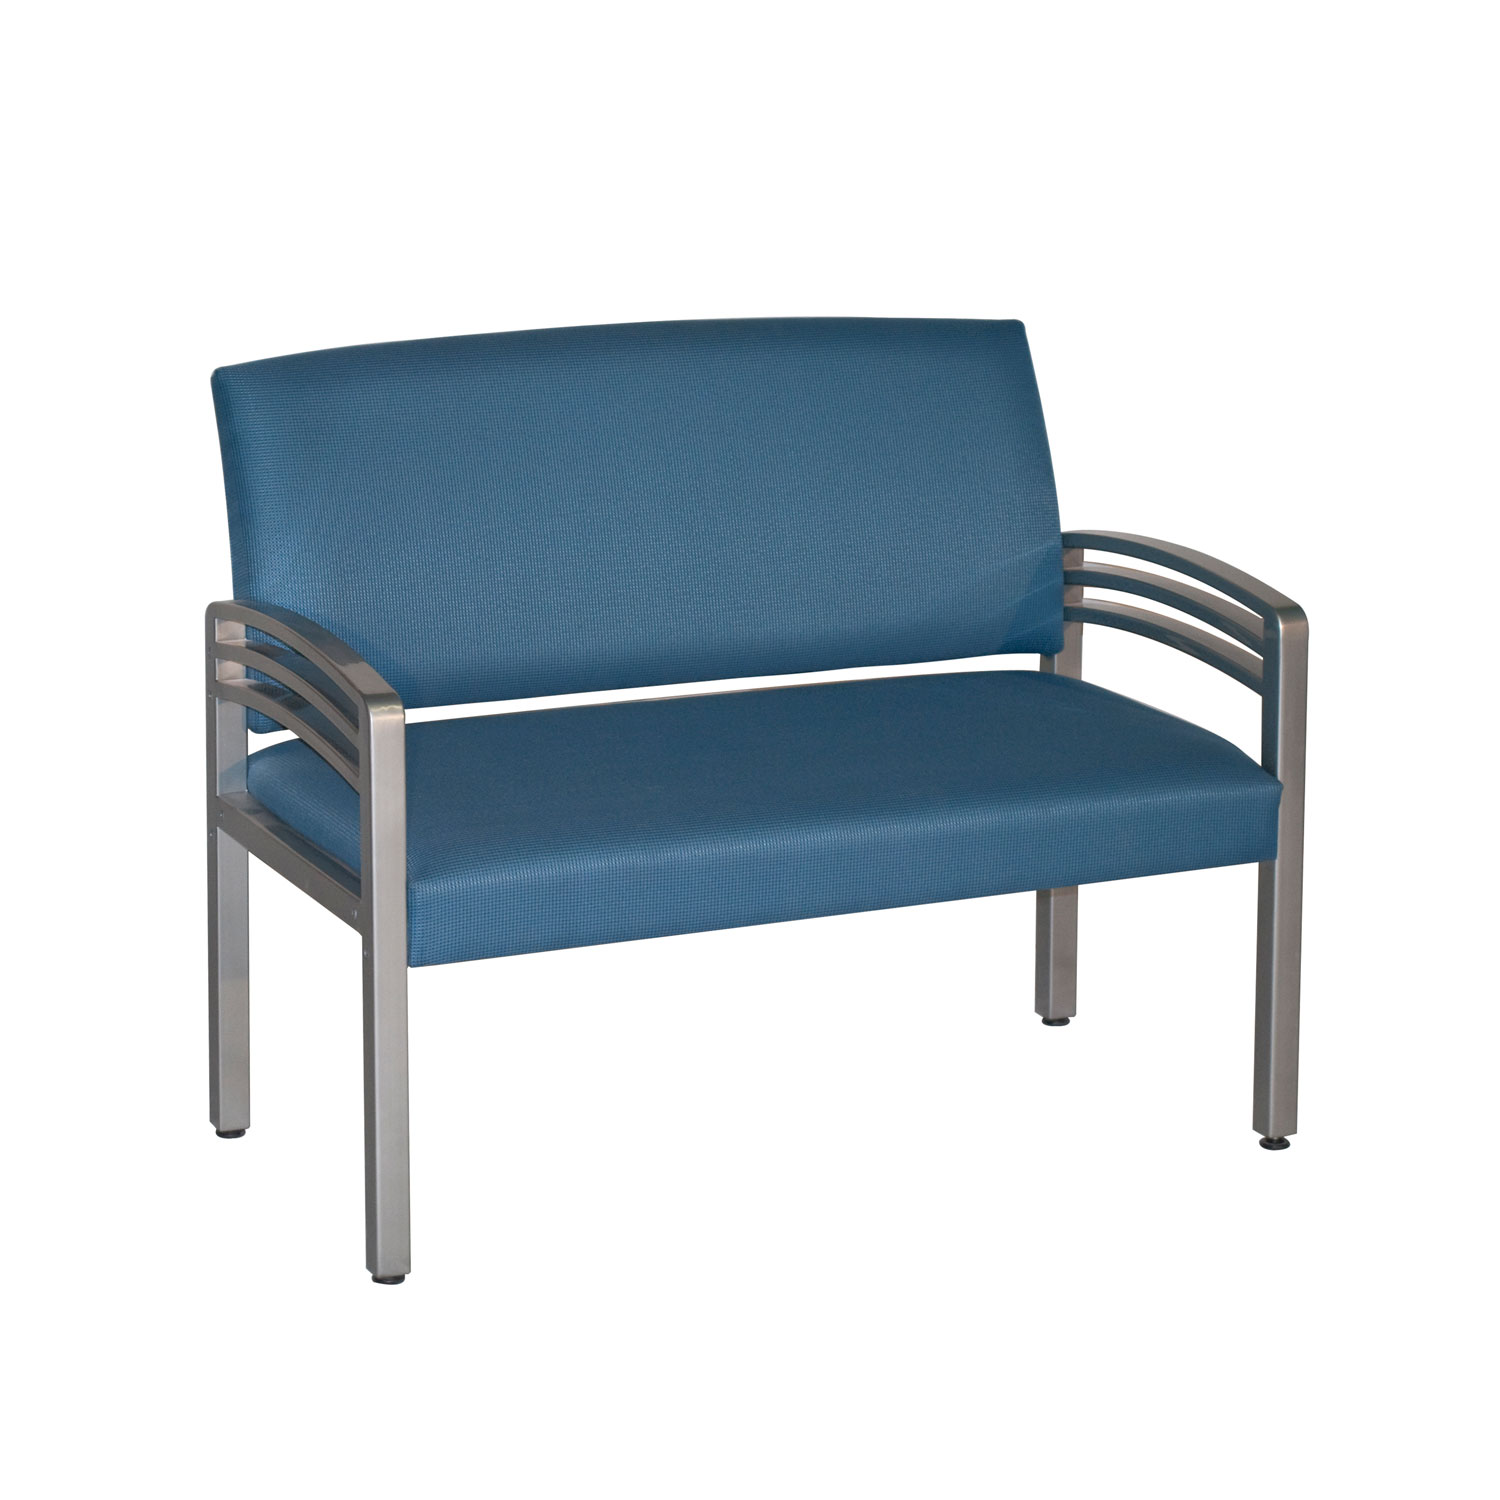 Trados Metal guest seating from HPFi High Point Furniture Industries